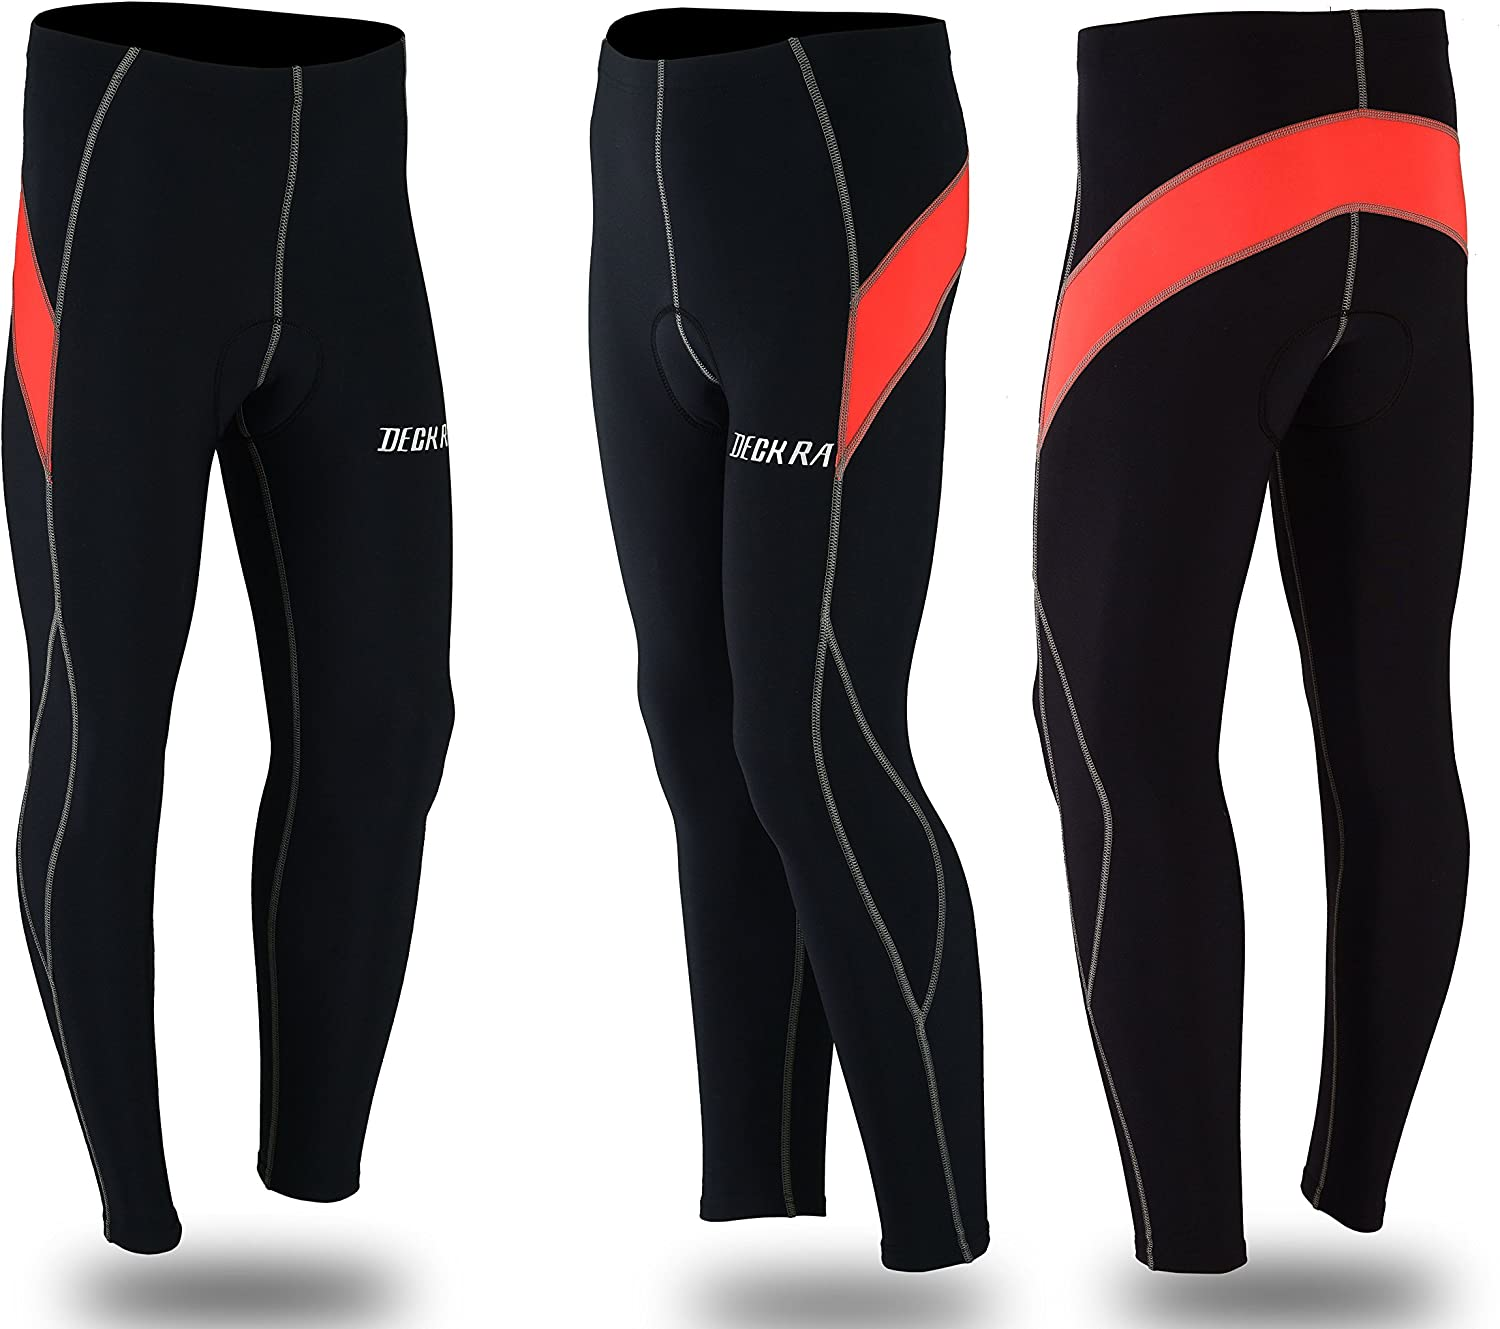 Deckra Mens Cycling Trouser Thermal Tight Pants Roubaix Bicycle Tight Leggings